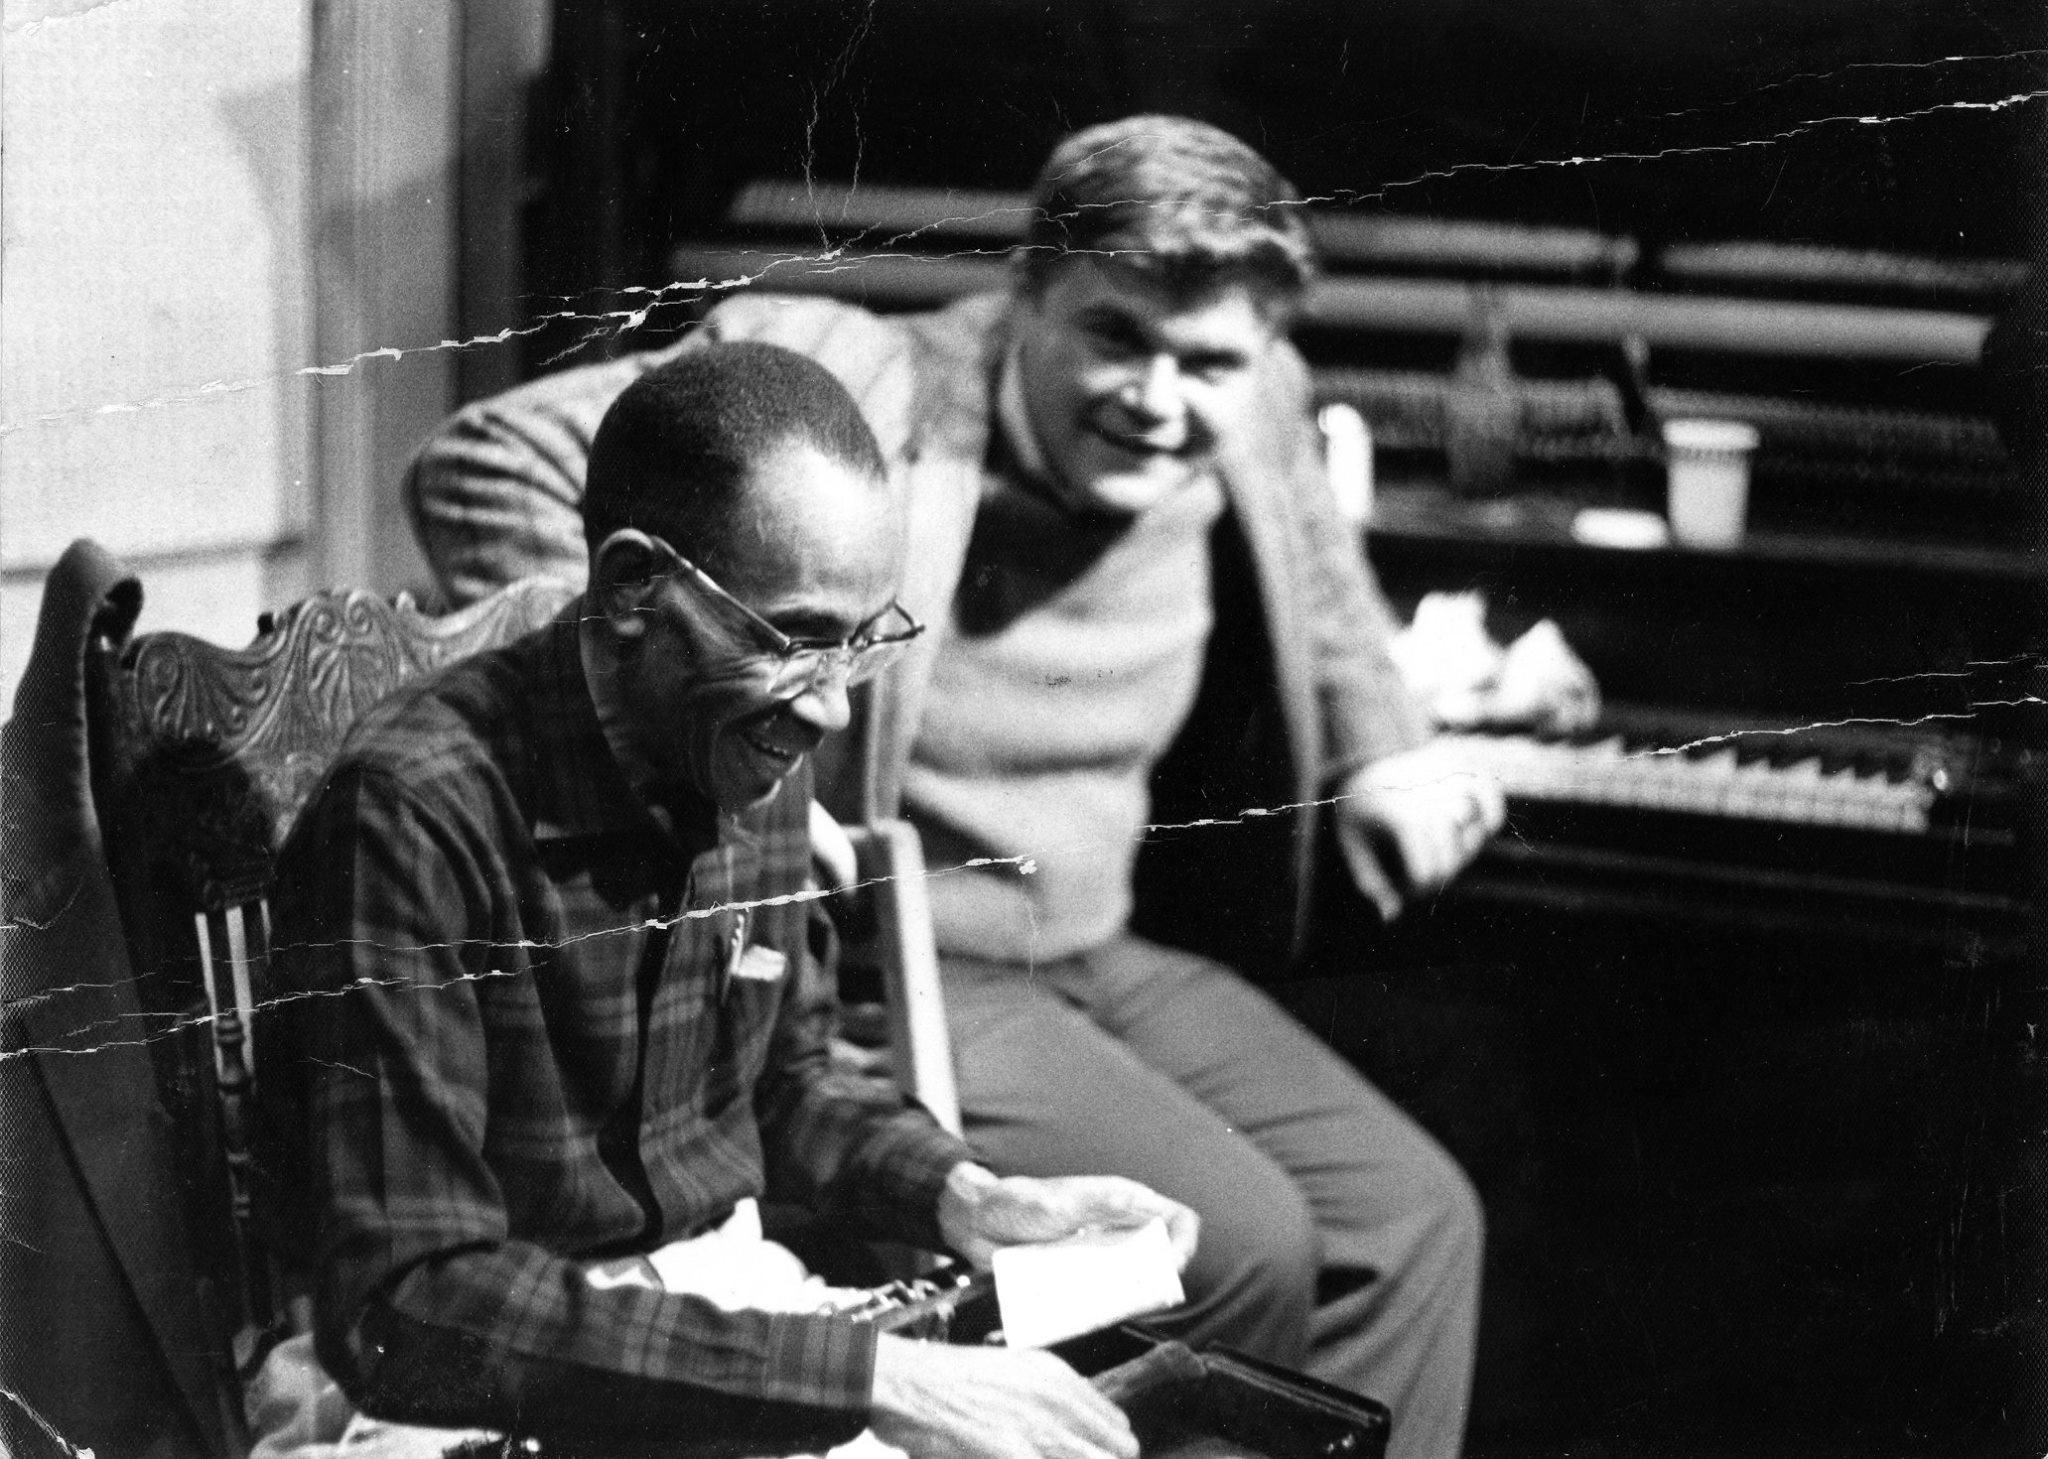 George Lewis and Allan Jaffe photo by Grauman Marks